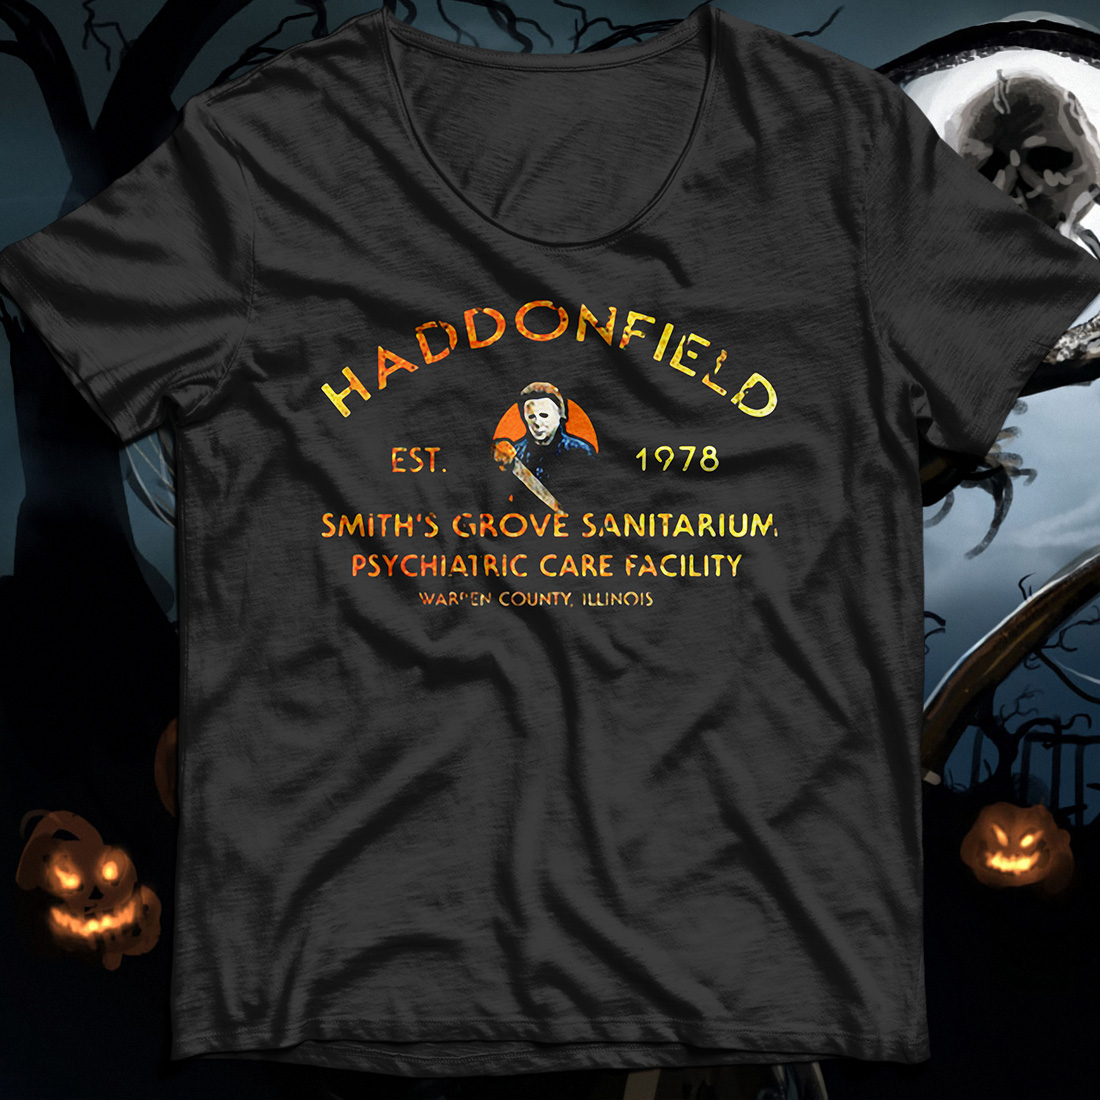 Haddonfield est 1978 smith's grove sanitarium psychiatric care facility shirt